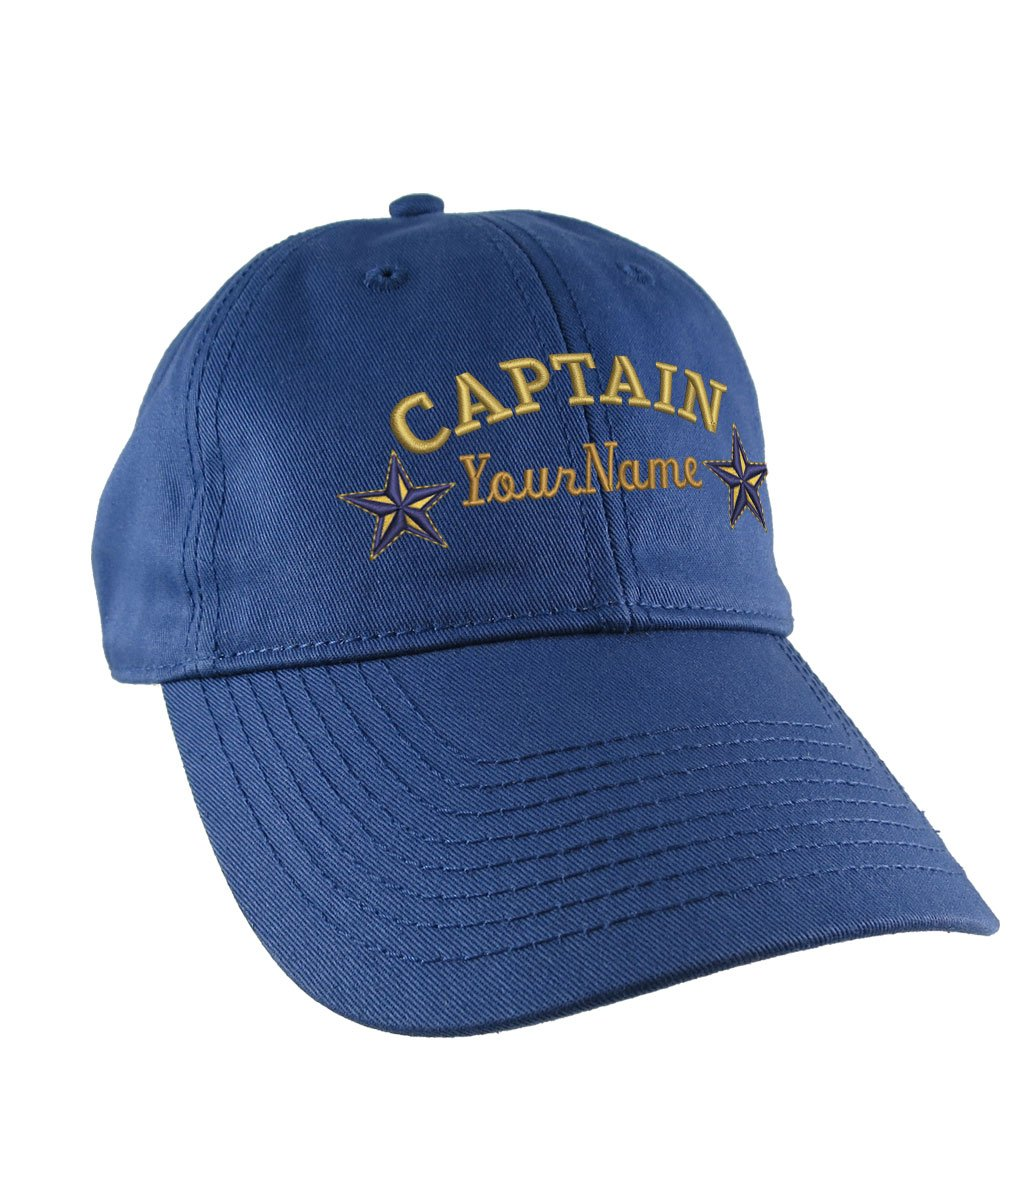 Custom Personalized Captain Stars Name Embroidery on an Adjustable Unstructured Indigo Blue Baseball Cap Dad Hat + Option